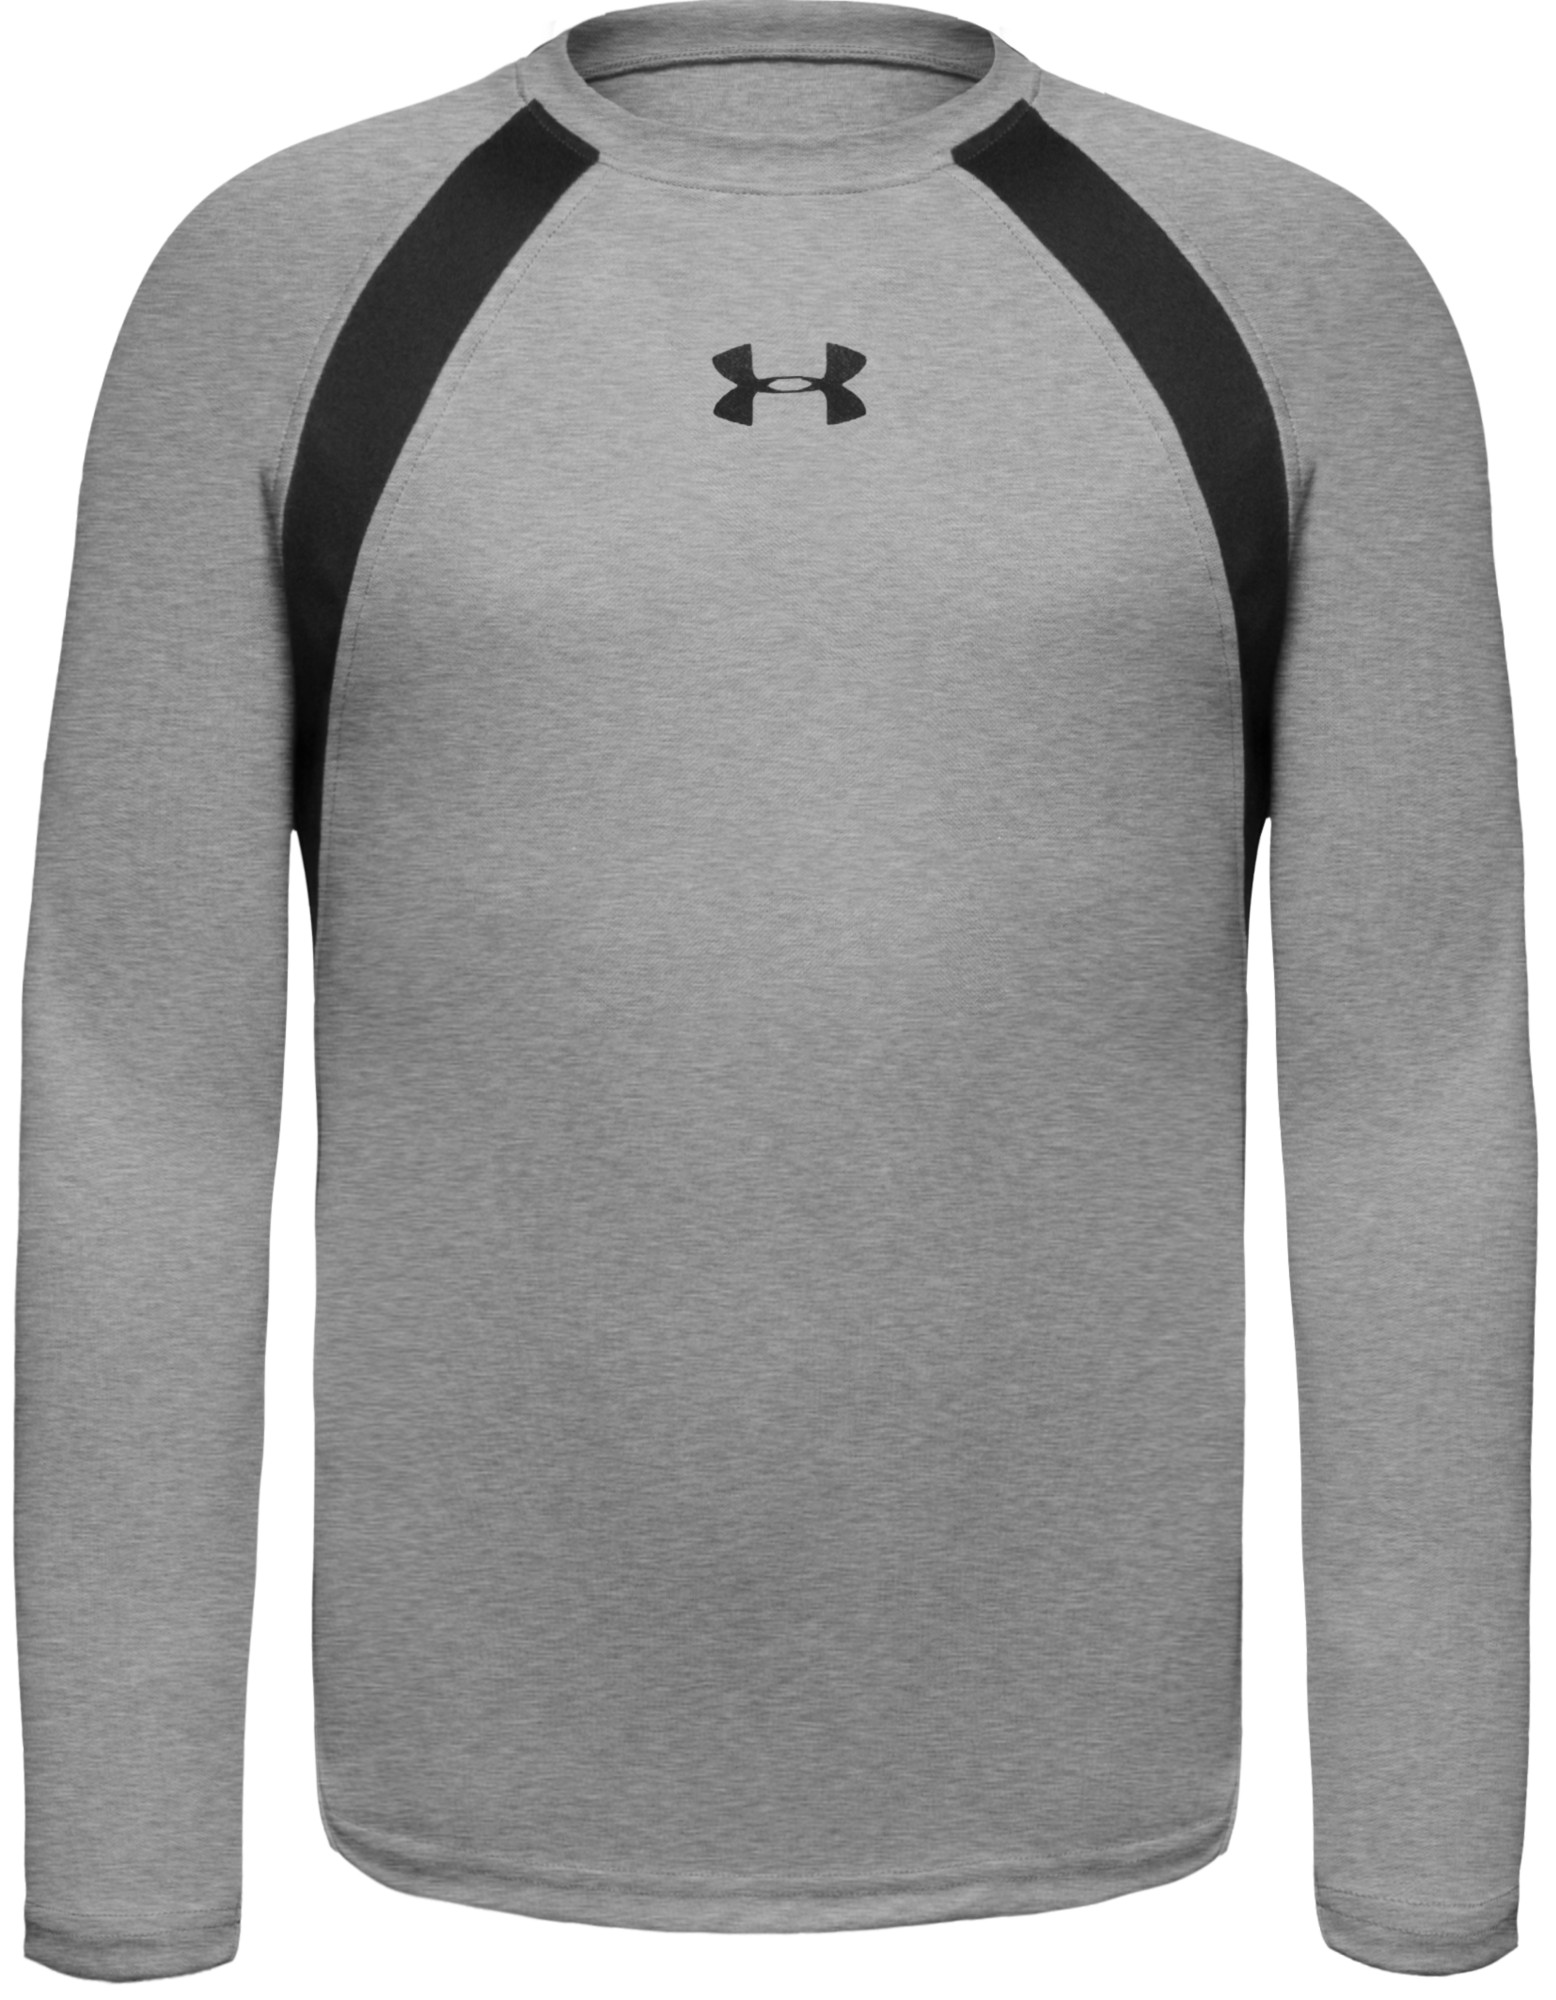 Under Armour Longsleeve Strength T Shirt